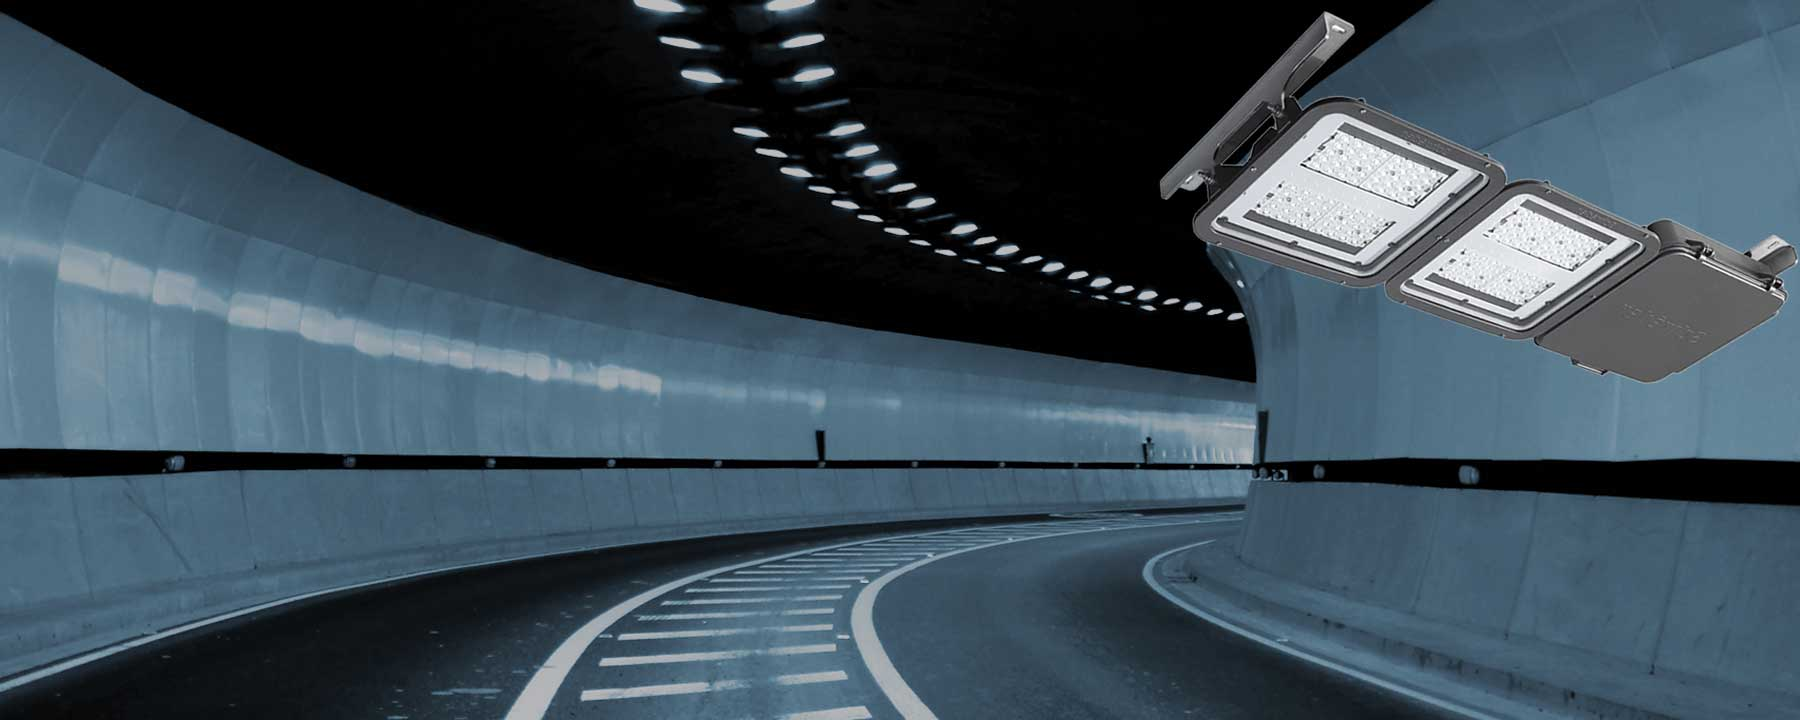 TLEX is the ultimate platform for safe, efficient and sustainable tunnels